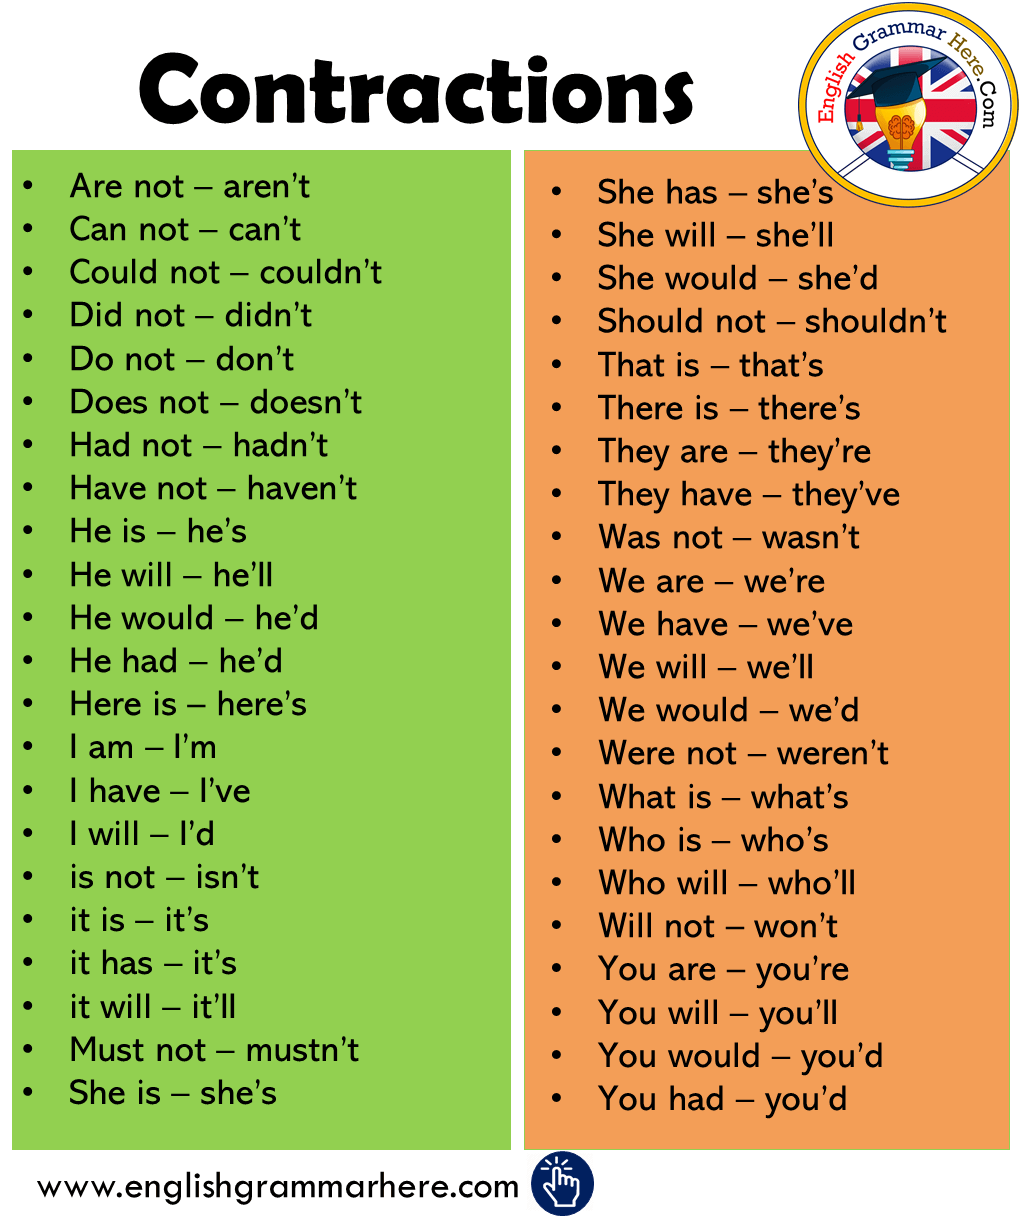 Contractions Examples in English